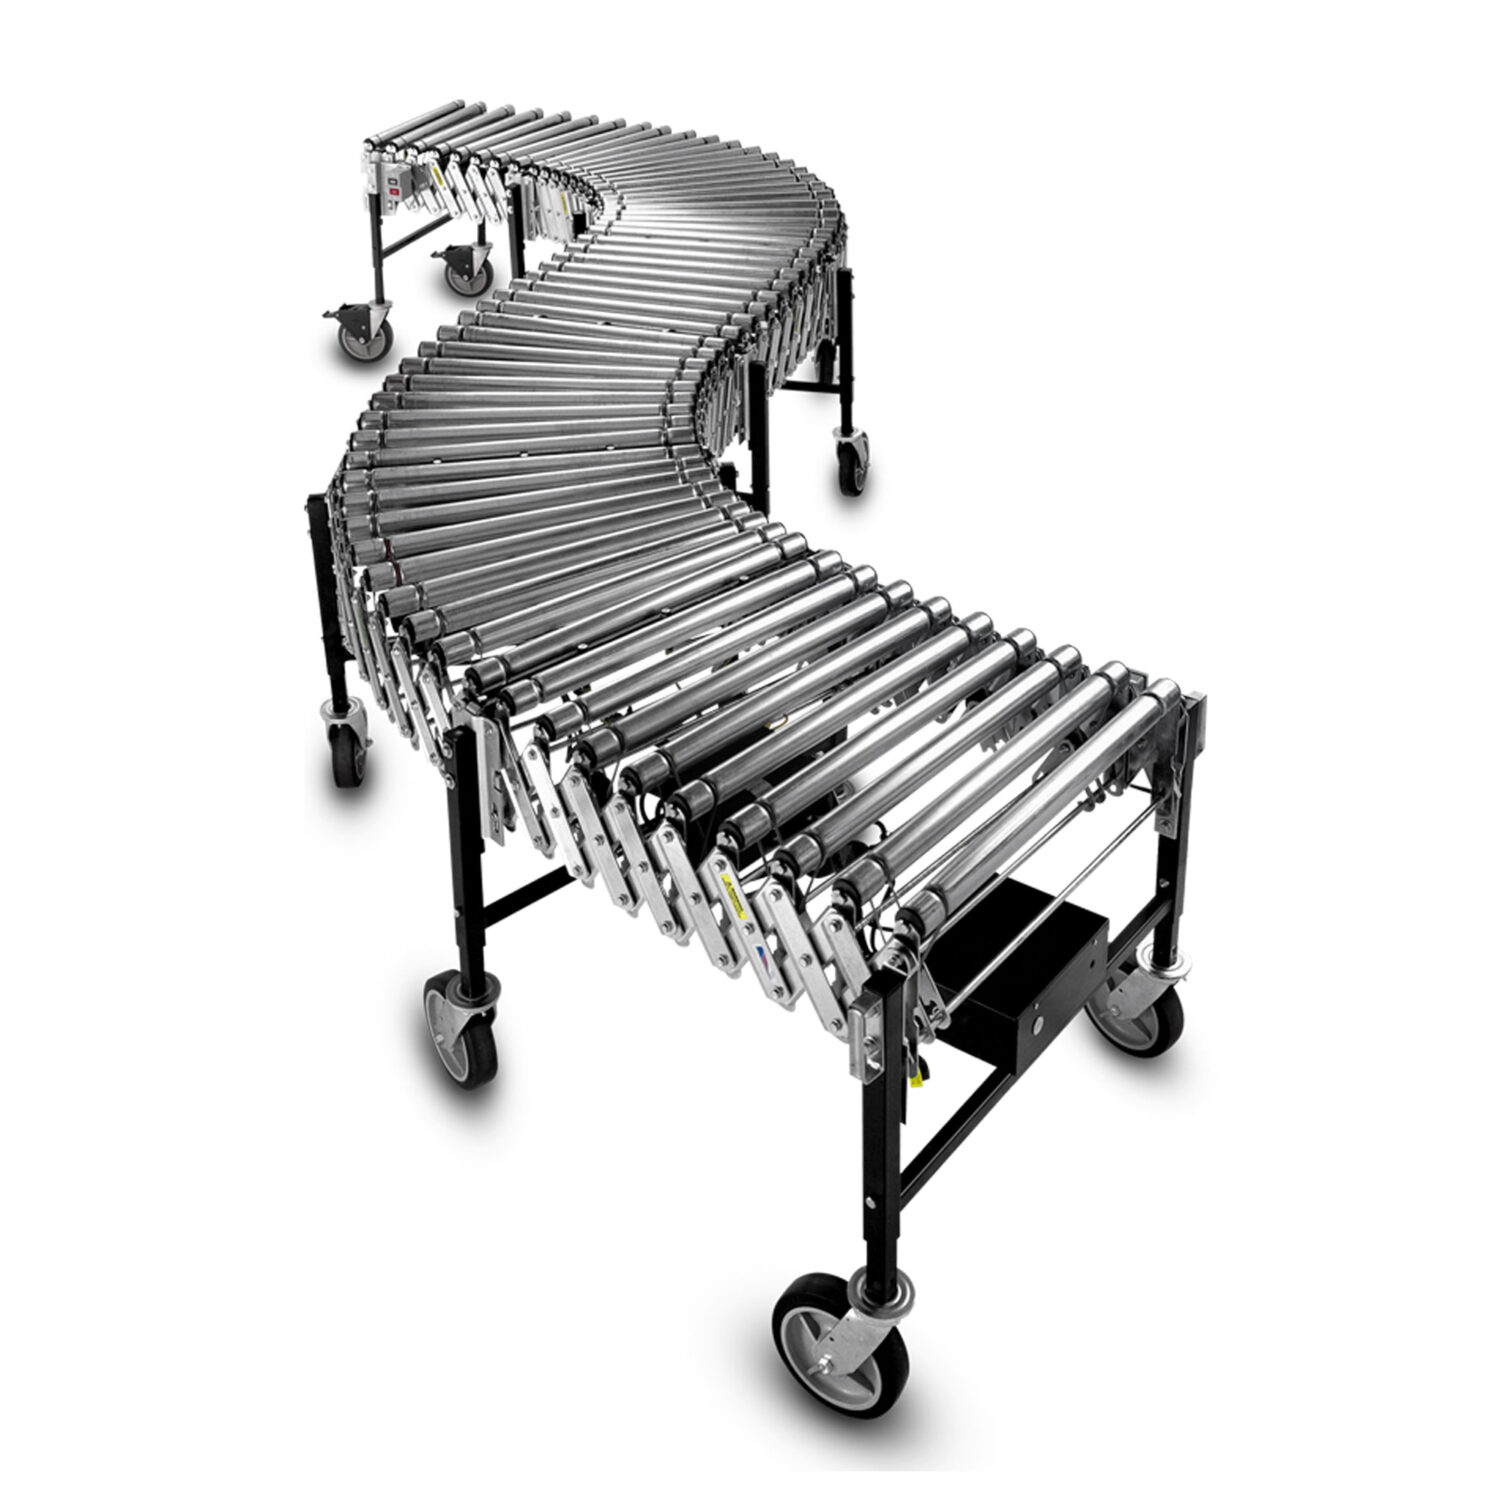 bestflex 1.9 powered roller flexible conveyor